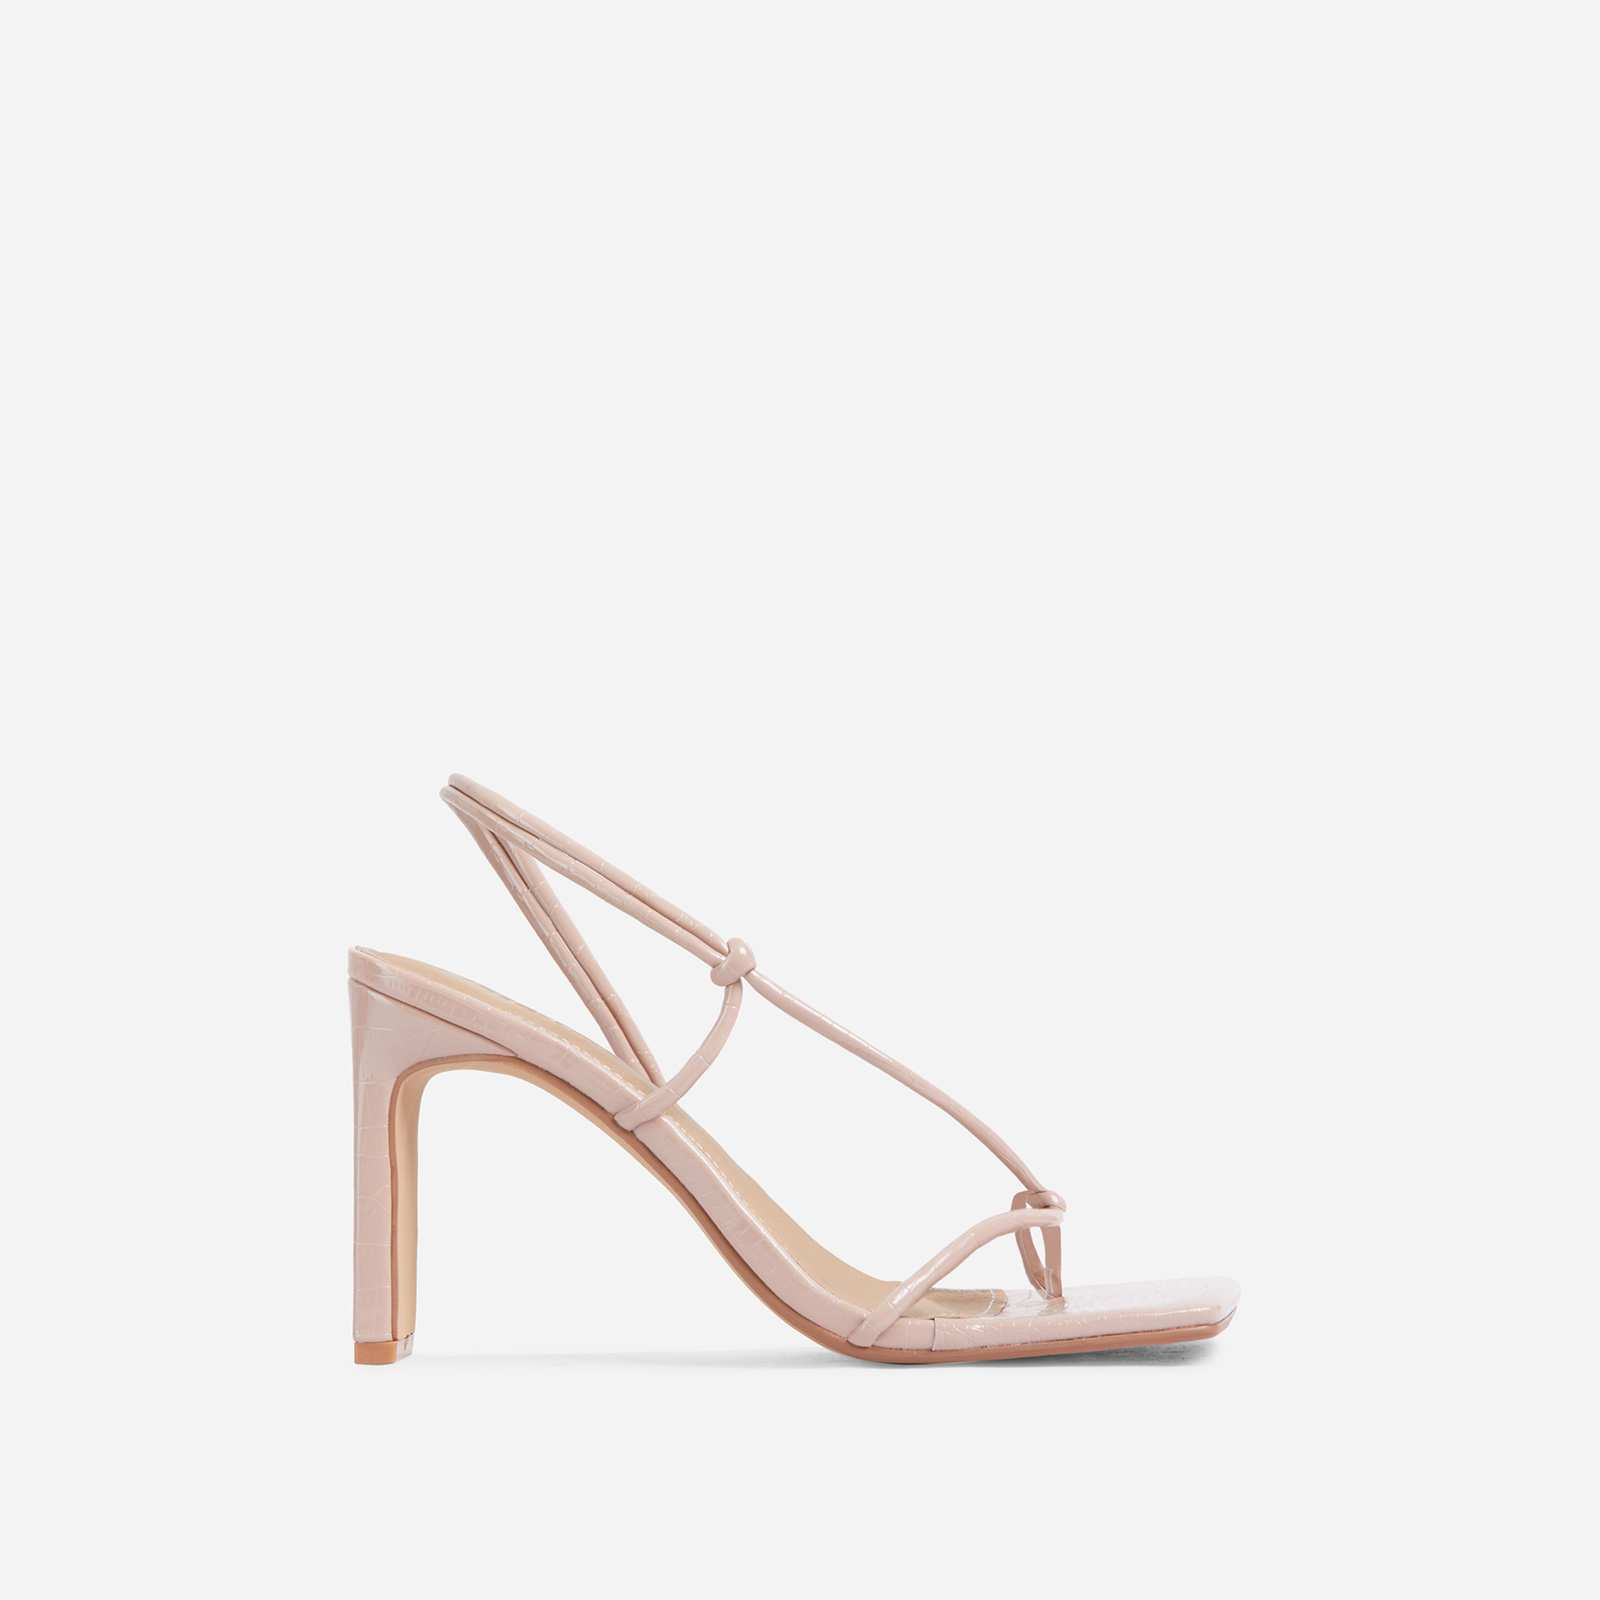 Marble Square Toe Knot Detail Heel In Nude Croc Print Patent